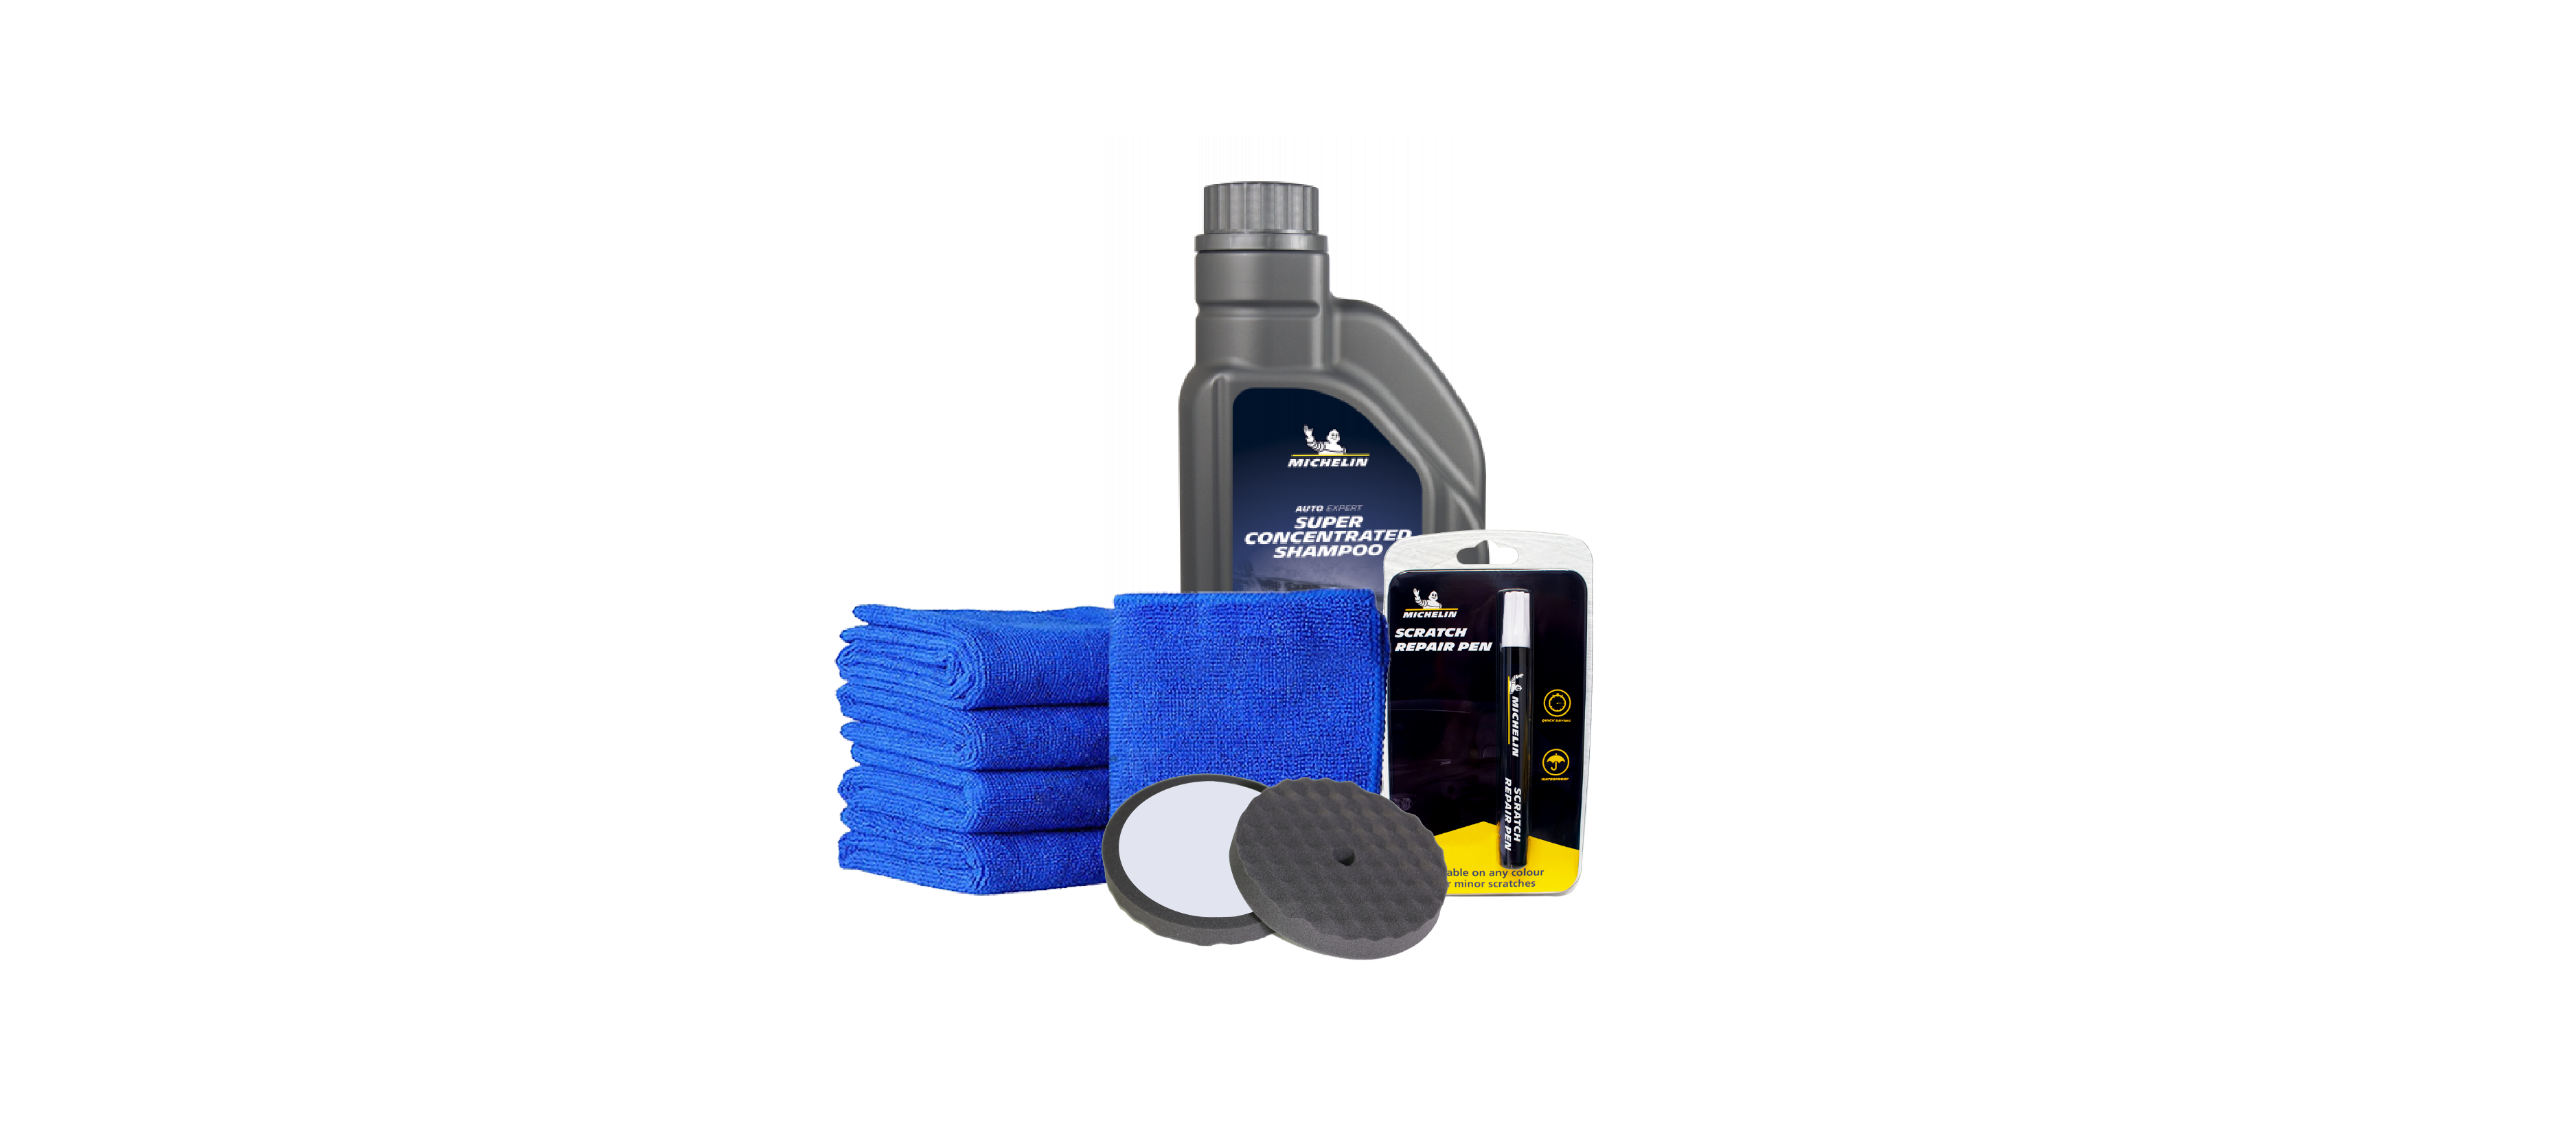 Things you need to remove remove car scratches with a scratch remover